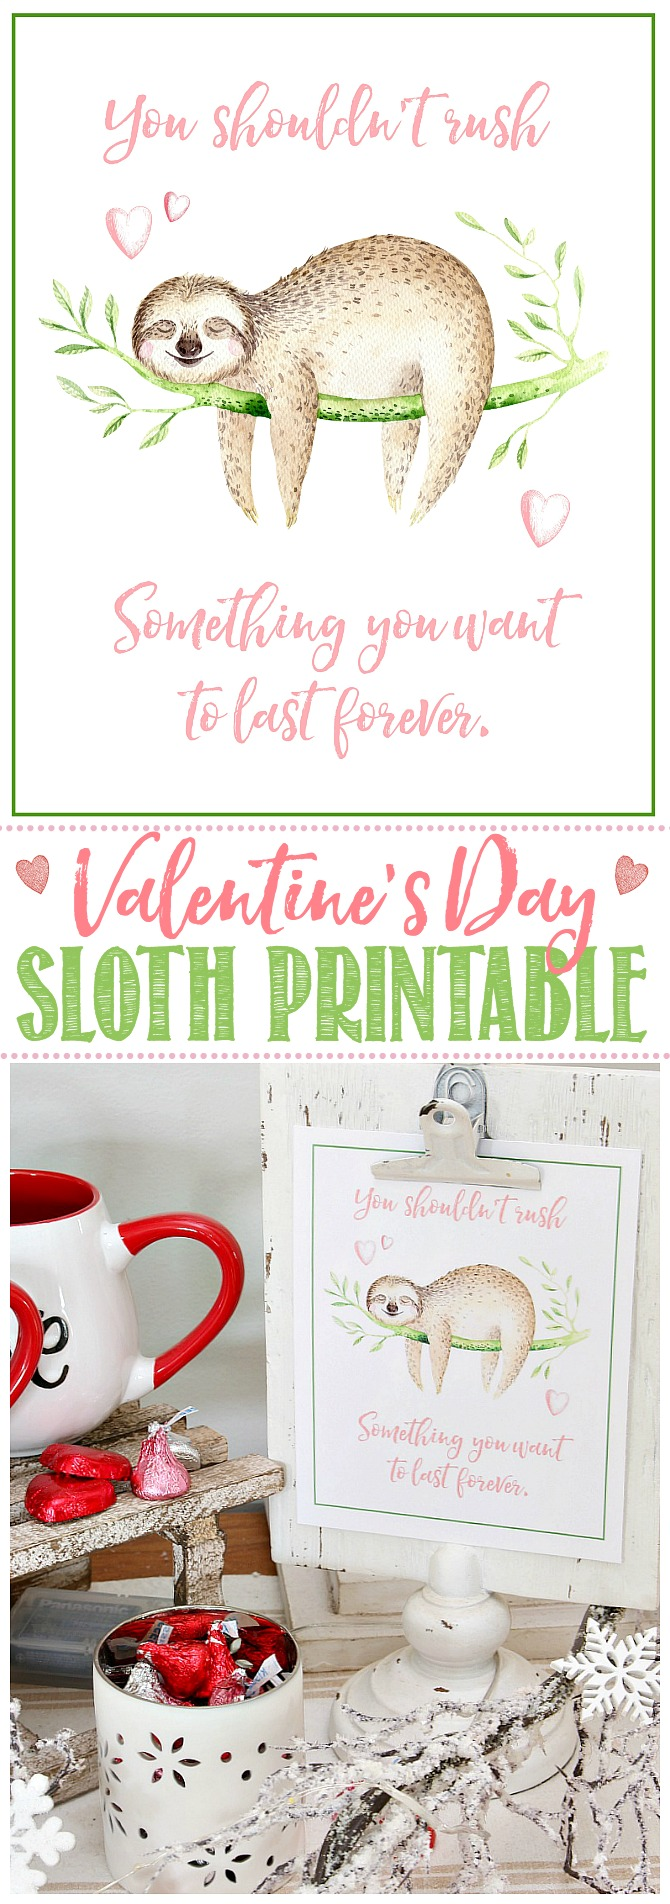 Cute sloth printable for Valentine's Day!